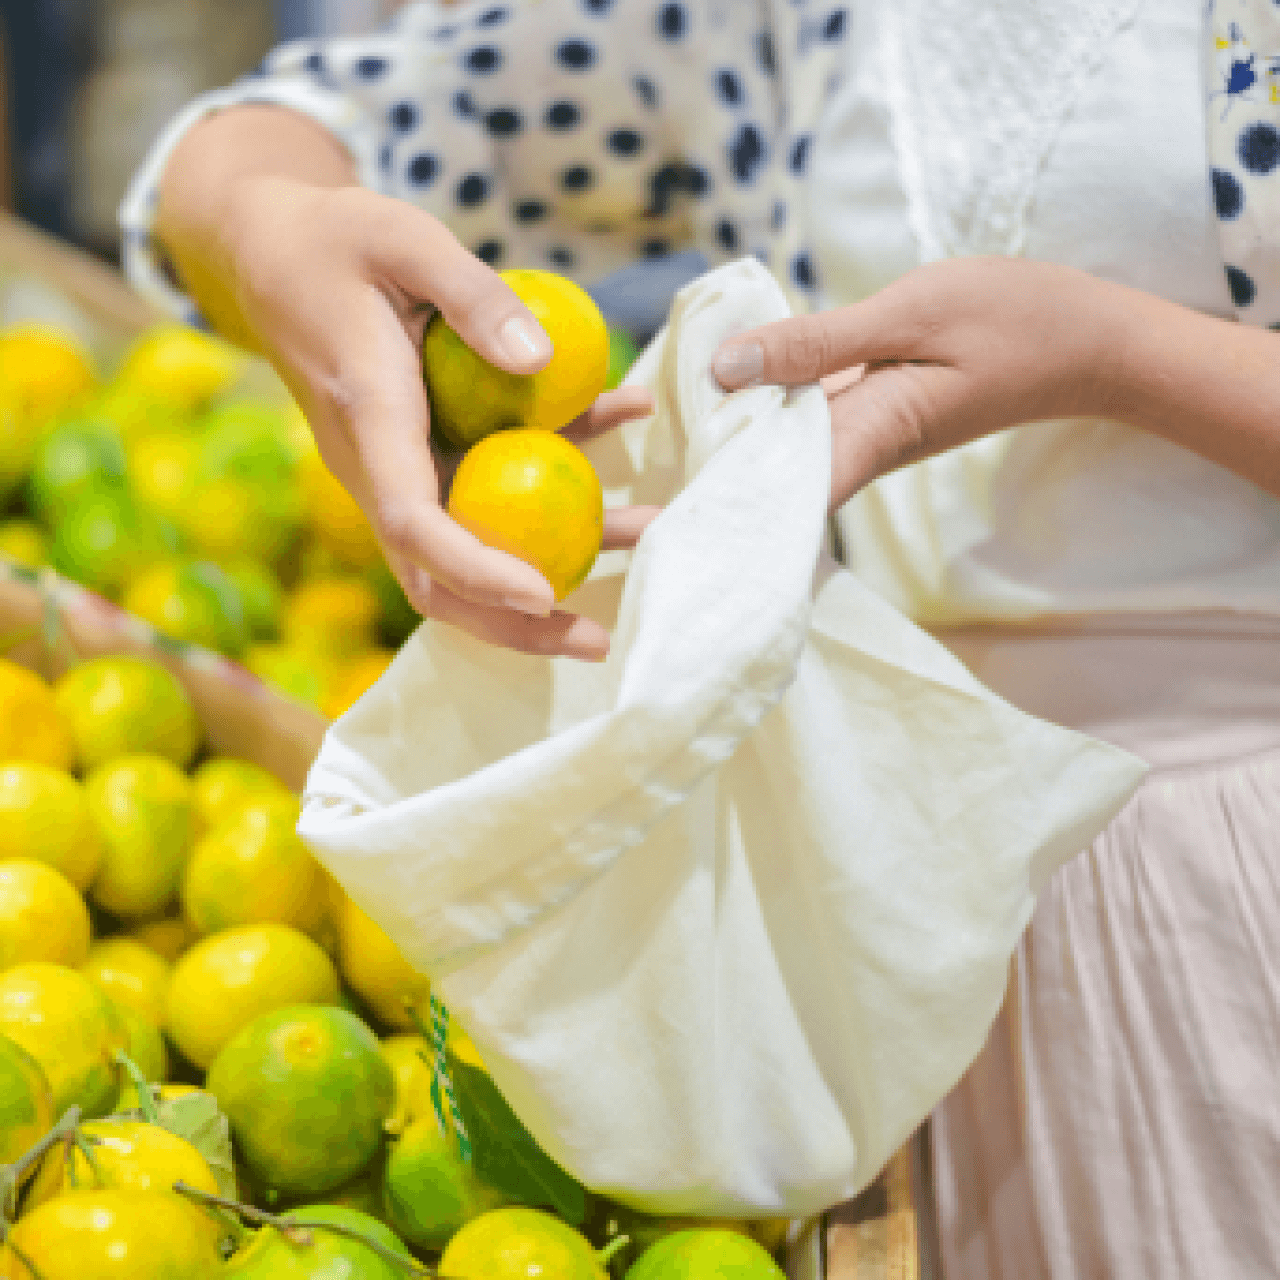 12 Ways to Reduce Plastic Waste in Your Purchases